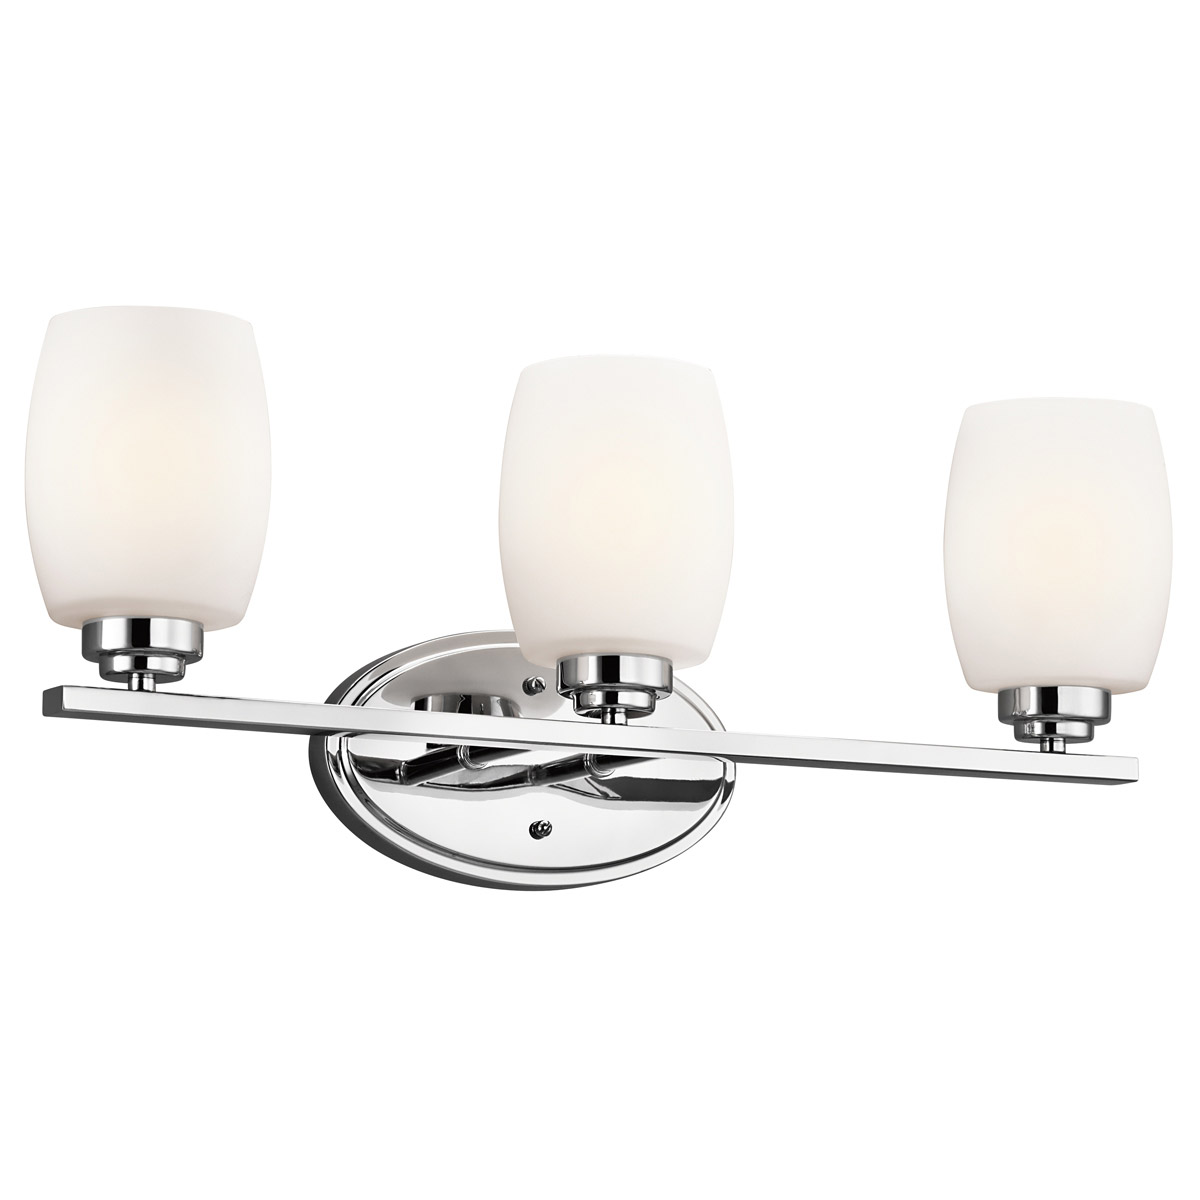 Kichler 5098CHL16 Eileen Energy Star LED Bathroom Vanity Light